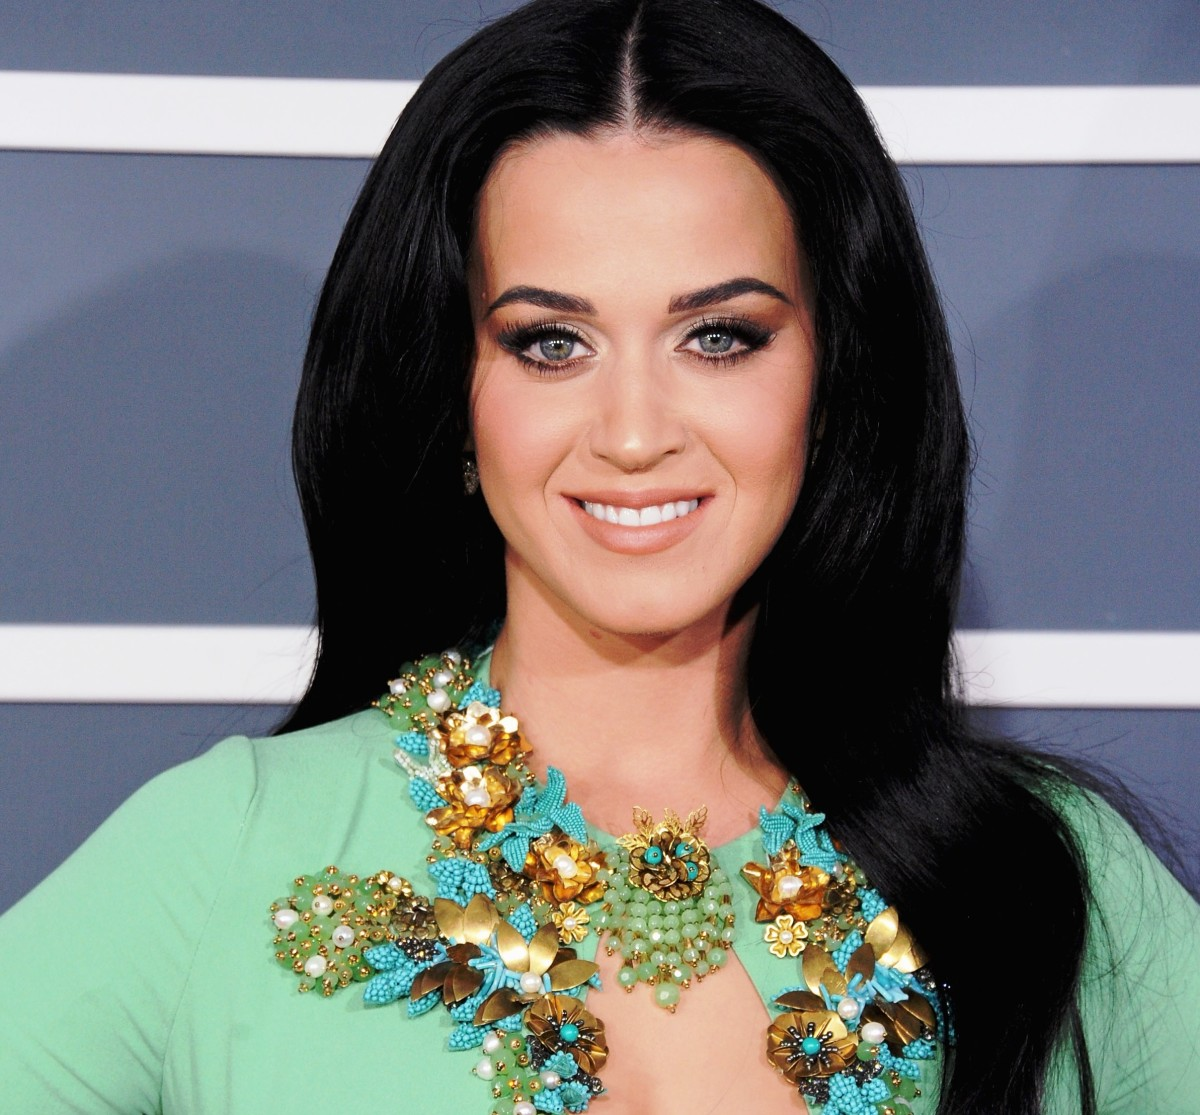 Wearing light green with black hair looks fabulous!